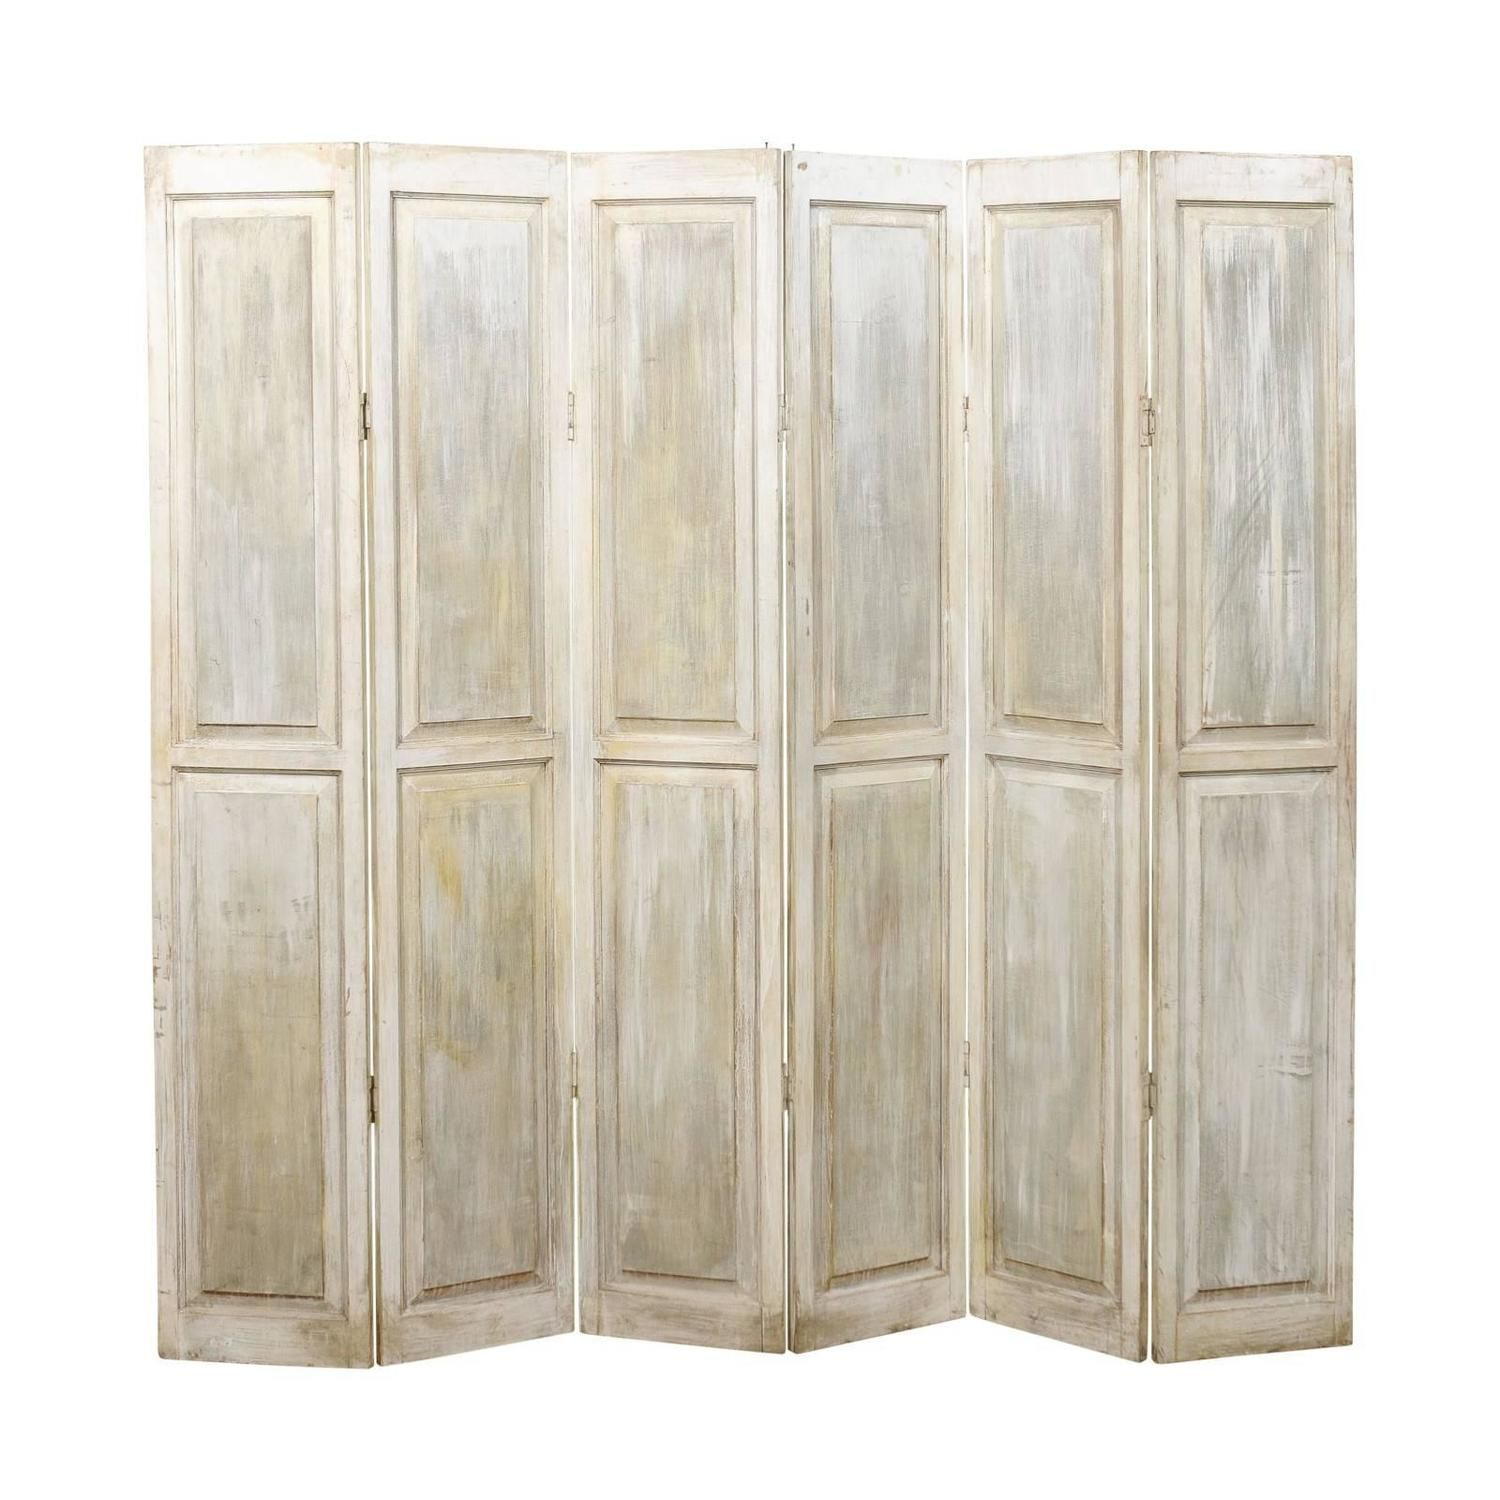 Room divider bookcase cubbies room divider panels privacy screens